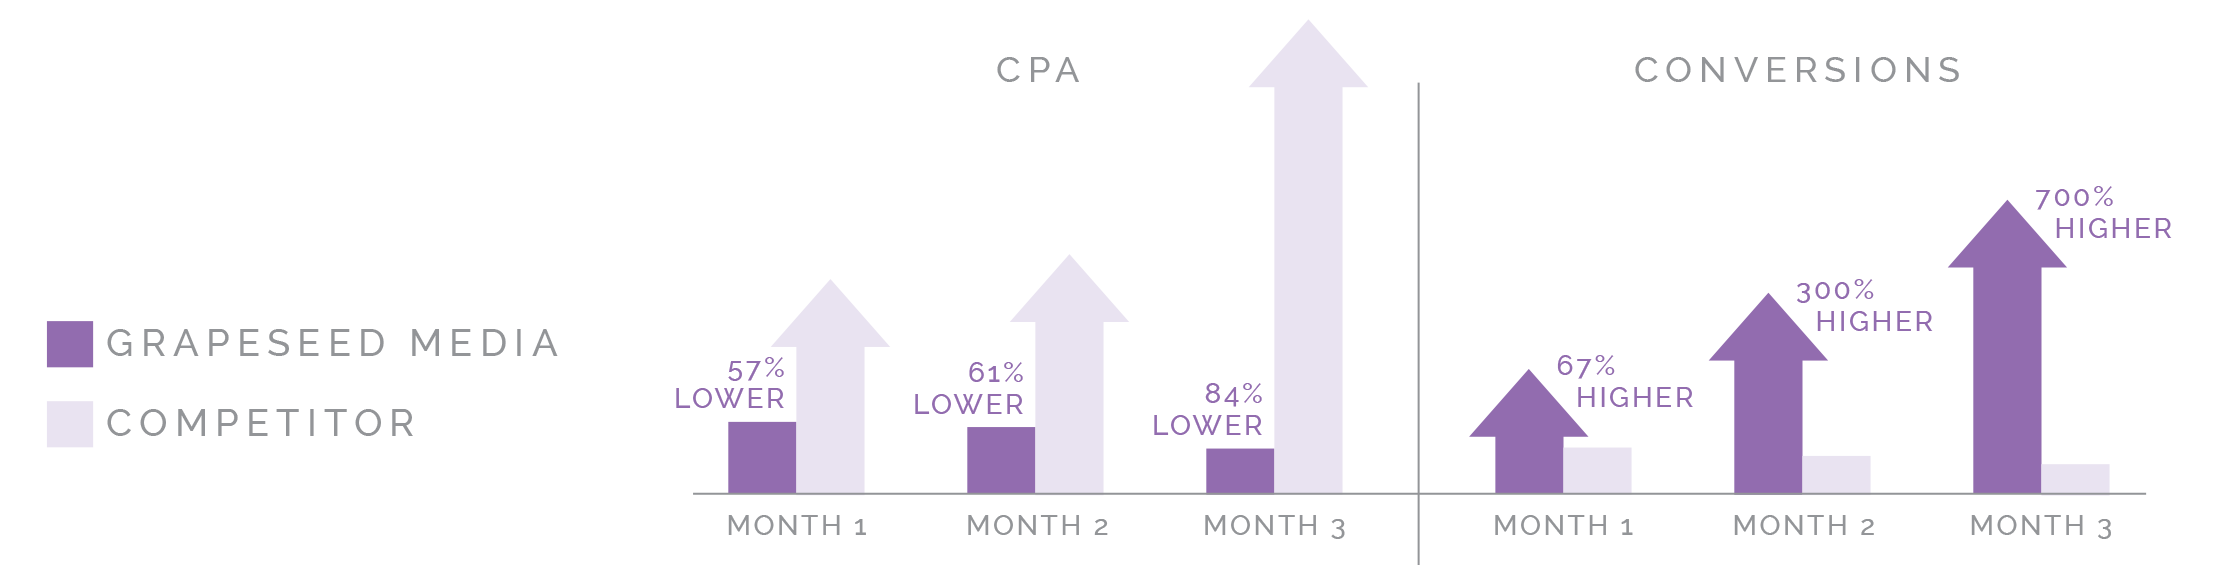 CPA & Conversions